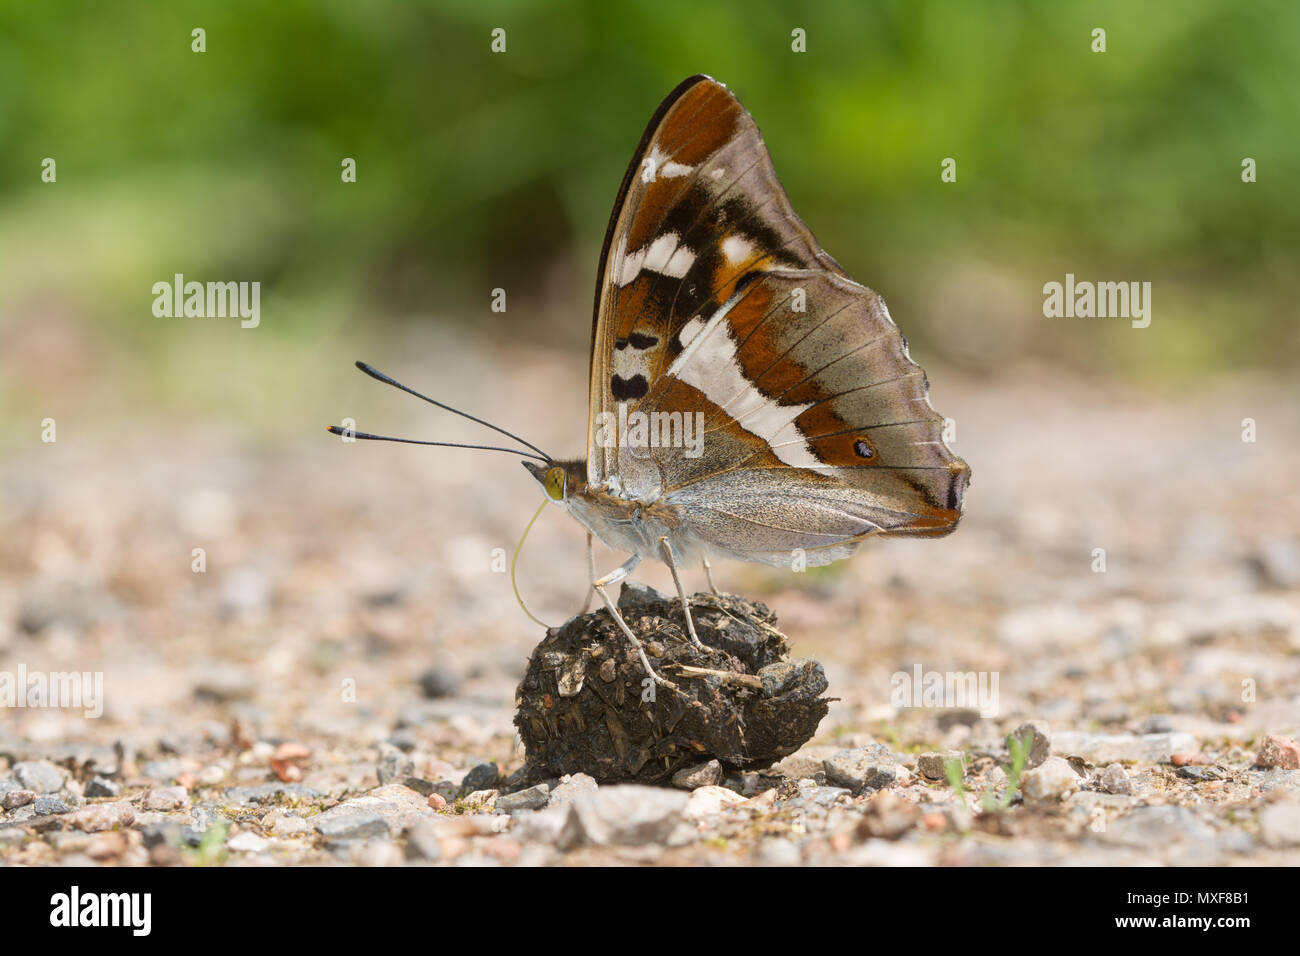 stunning-purple-emperor-butterfly-apatura-iris-collecting-minerals-from-droppings-on-a-woodland-track-in-oaken-wood-chiddingfold-forest-surrey-uk-MXF8B1.jpg